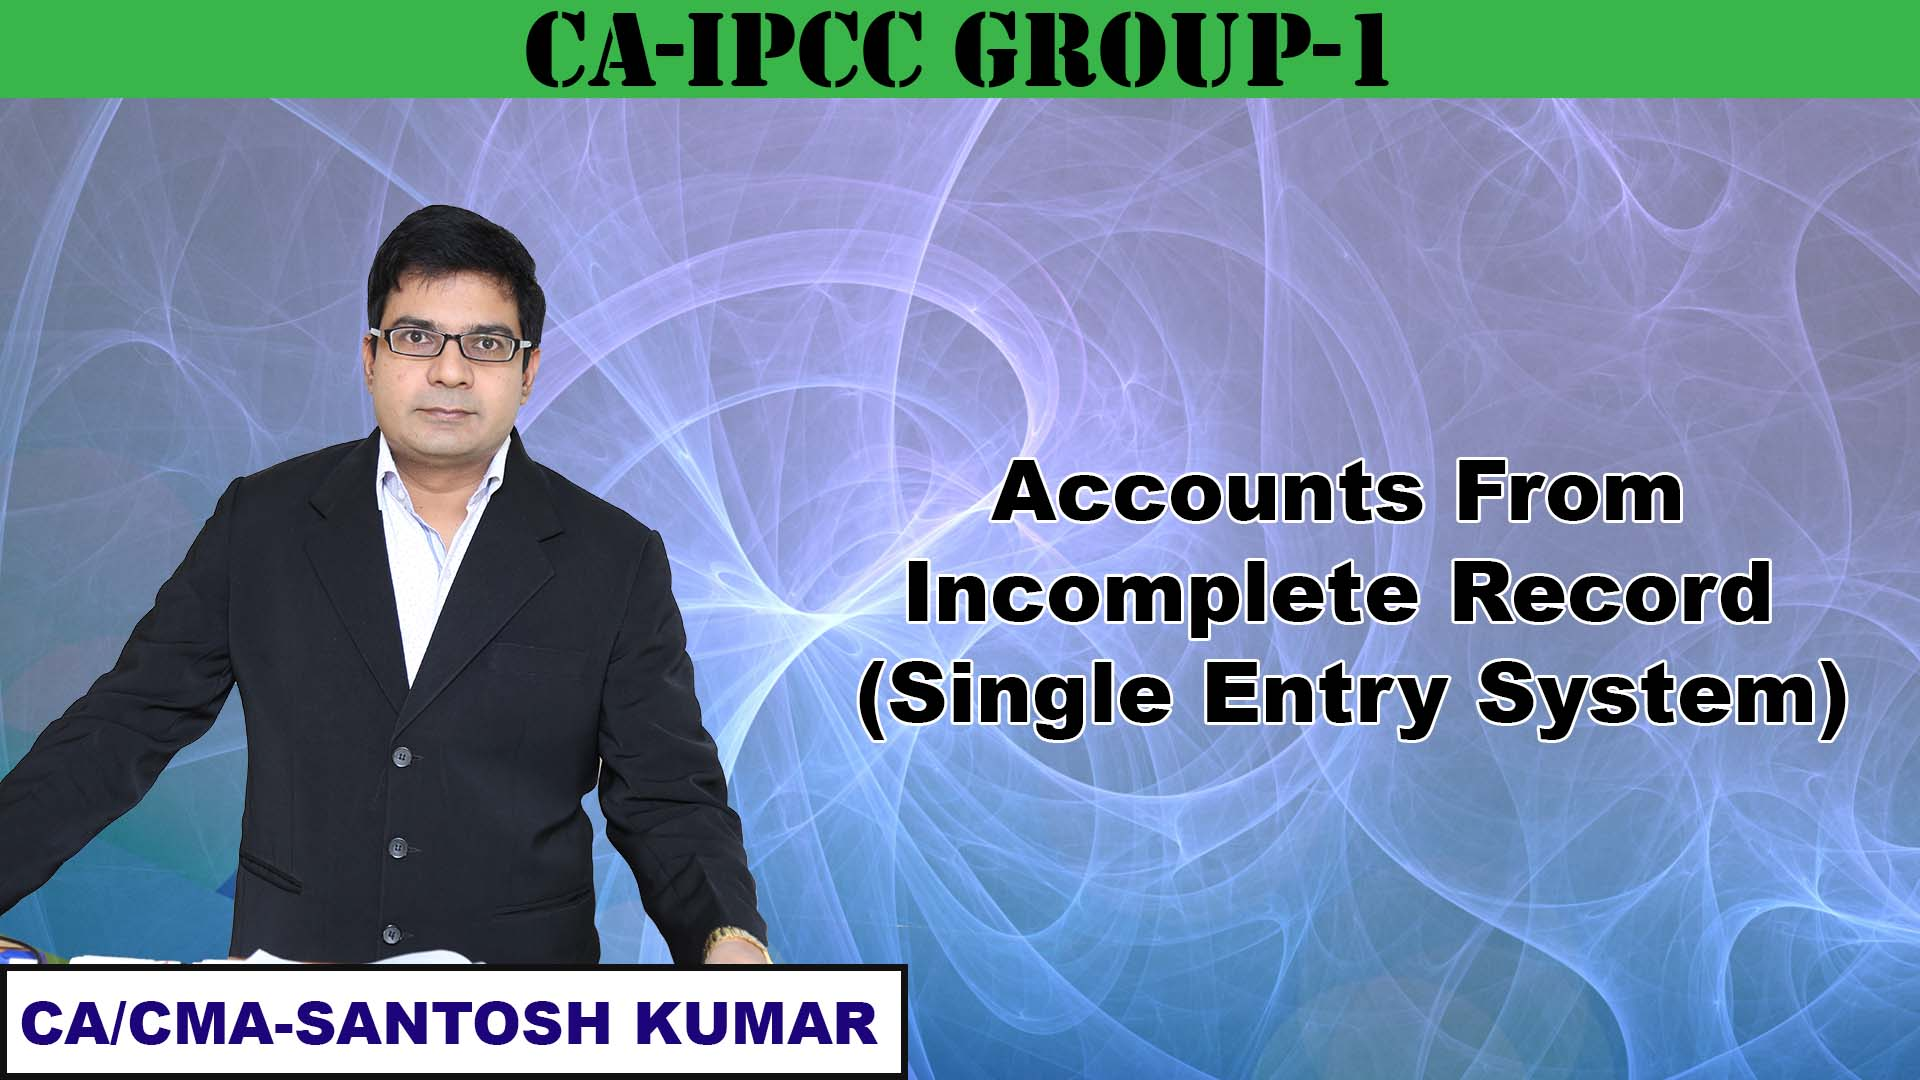 Accounts from Incomplete Record (Single Entry System)